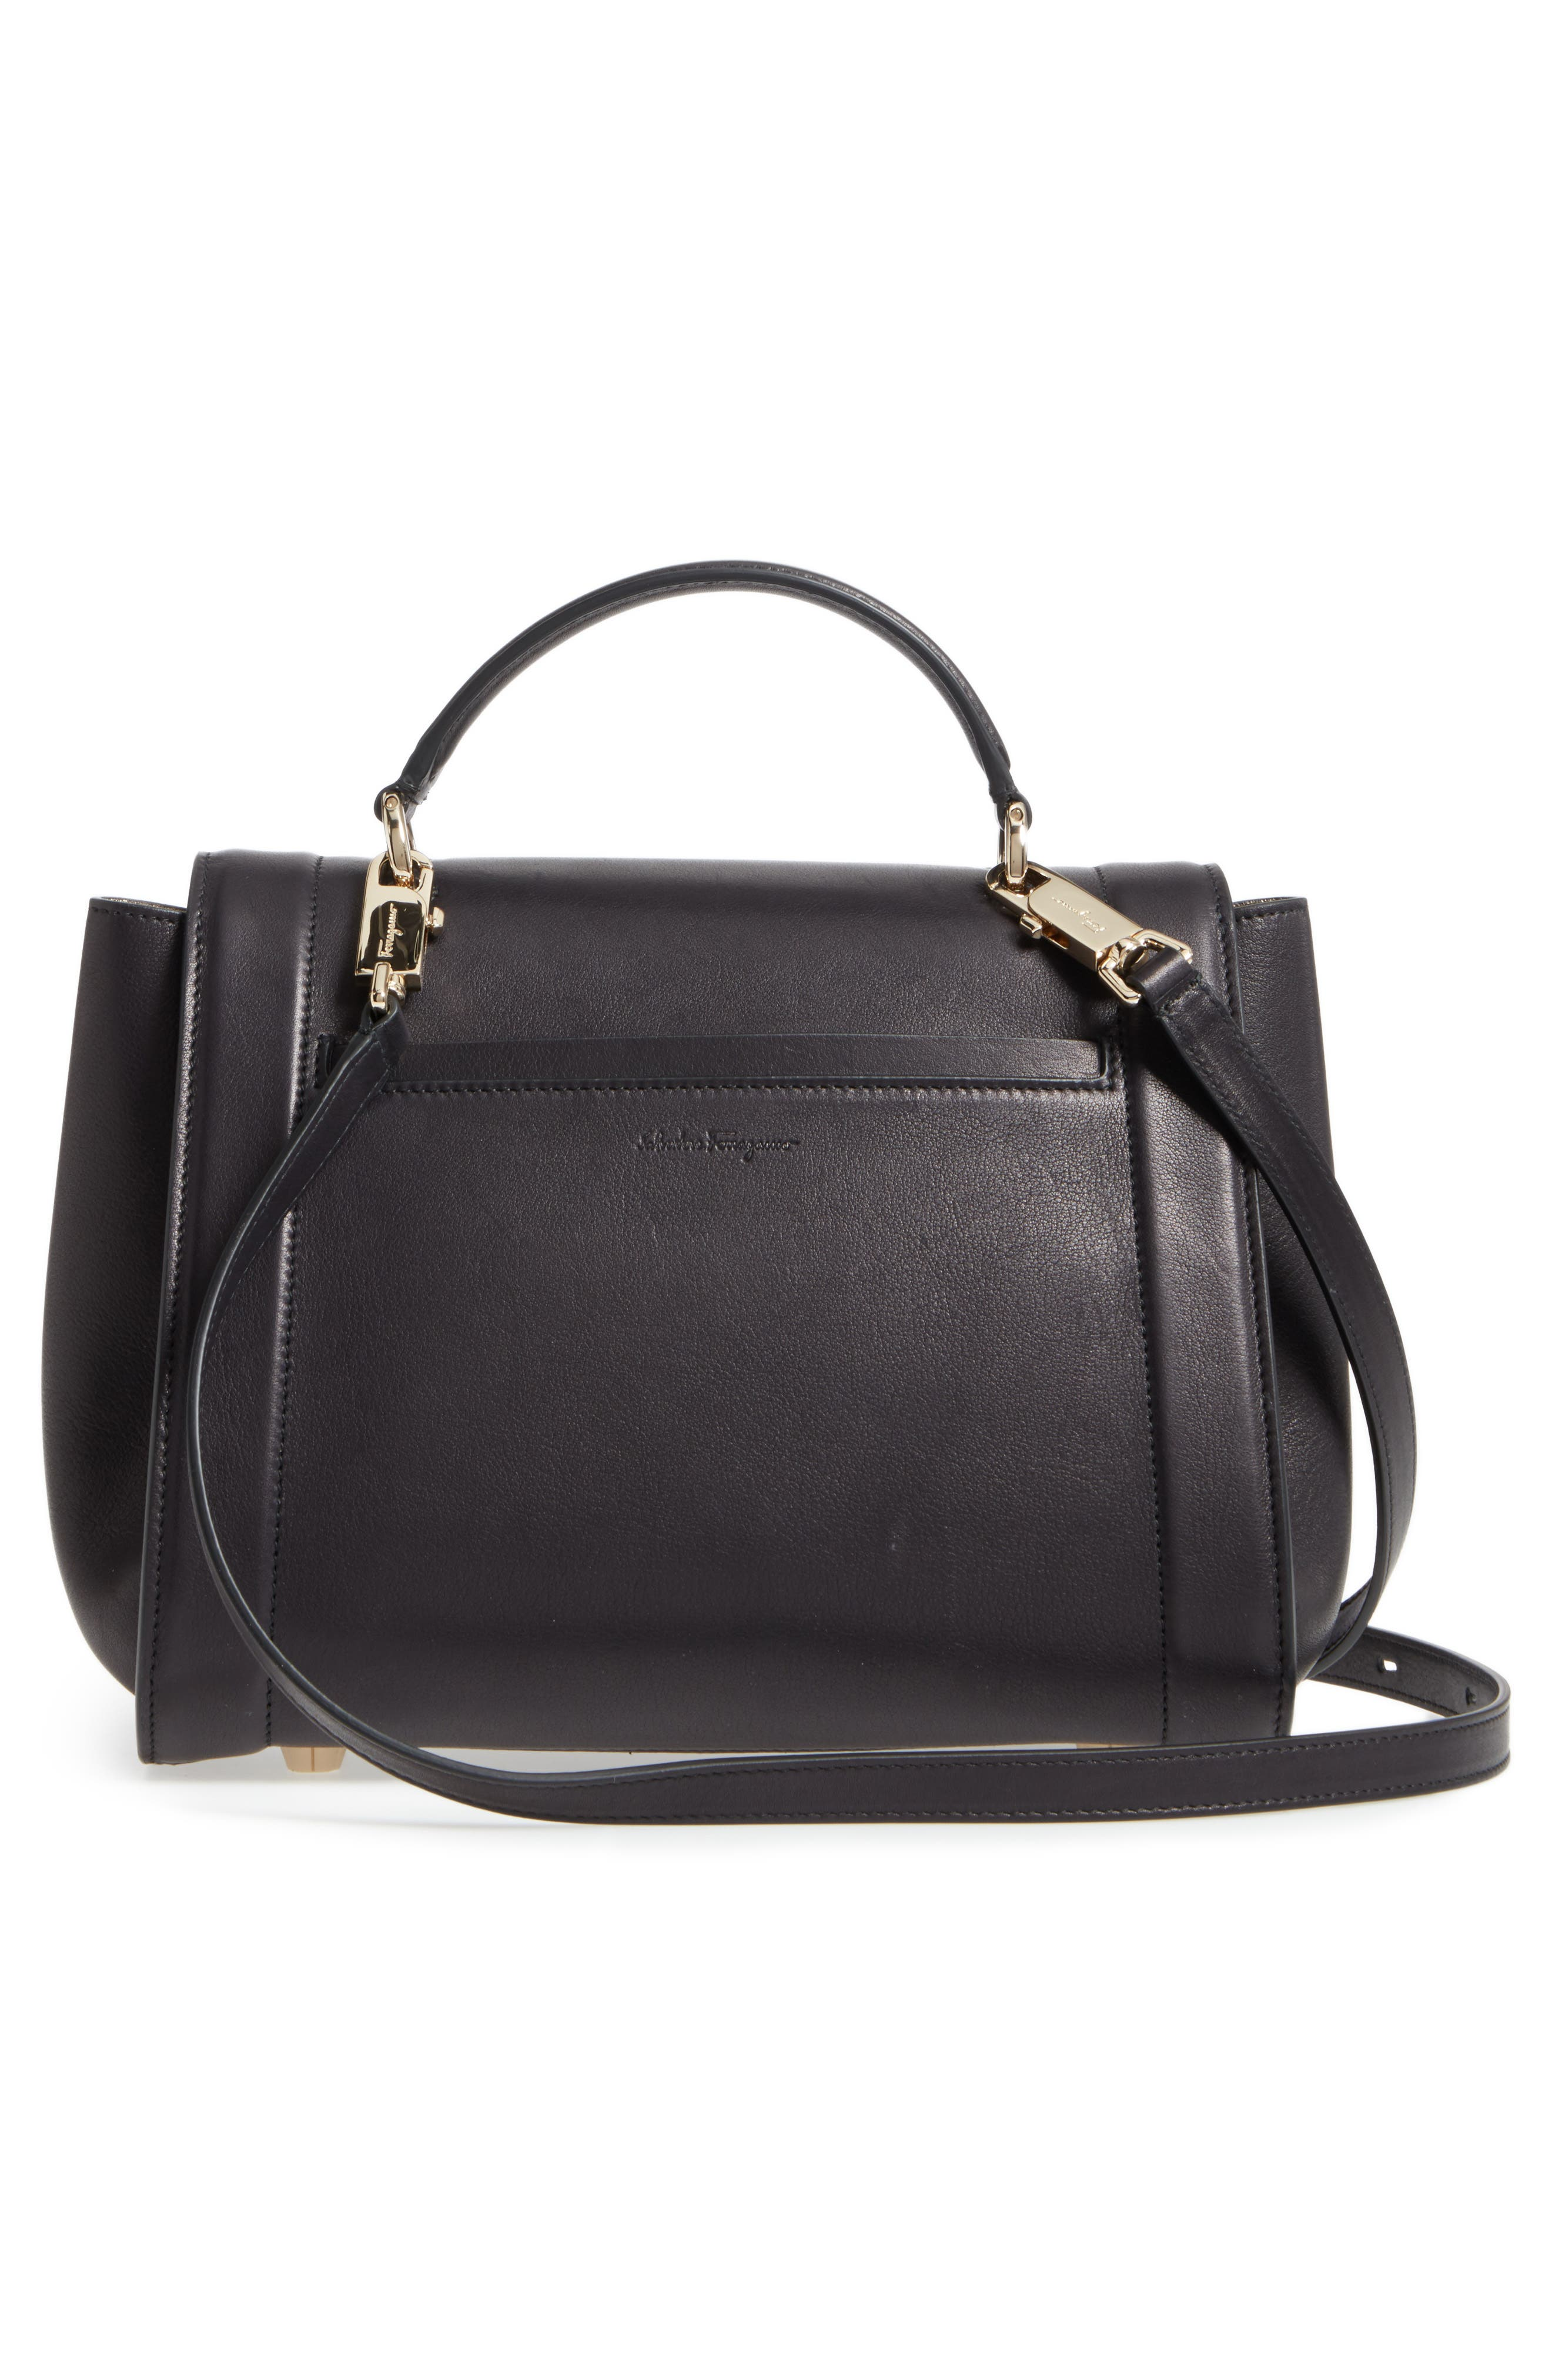 Small Sophia Leather Satchel,                             Alternate thumbnail 2, color,                             Nero/ Agento/ New Bianco